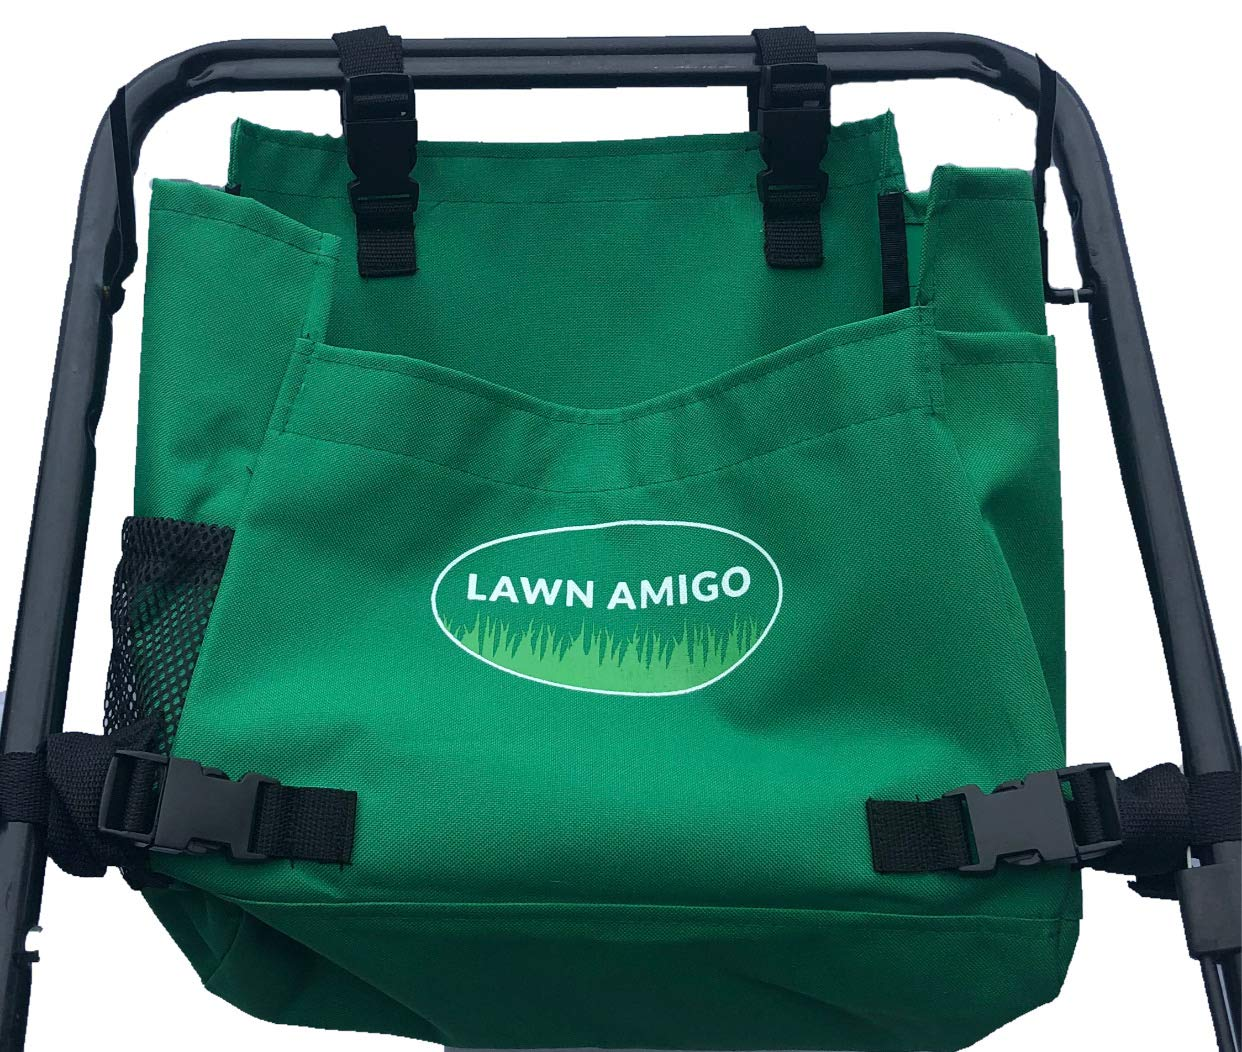 Lawn Amigo. Push Mower Organizer. Bag Clips to Walk-Behind Mower Handles and Stores Tools Water Bottle Phone Knife Tool Bags and iPhone (Black, Green, Red). Made in USA. Yard Gifts for Men. (Green)